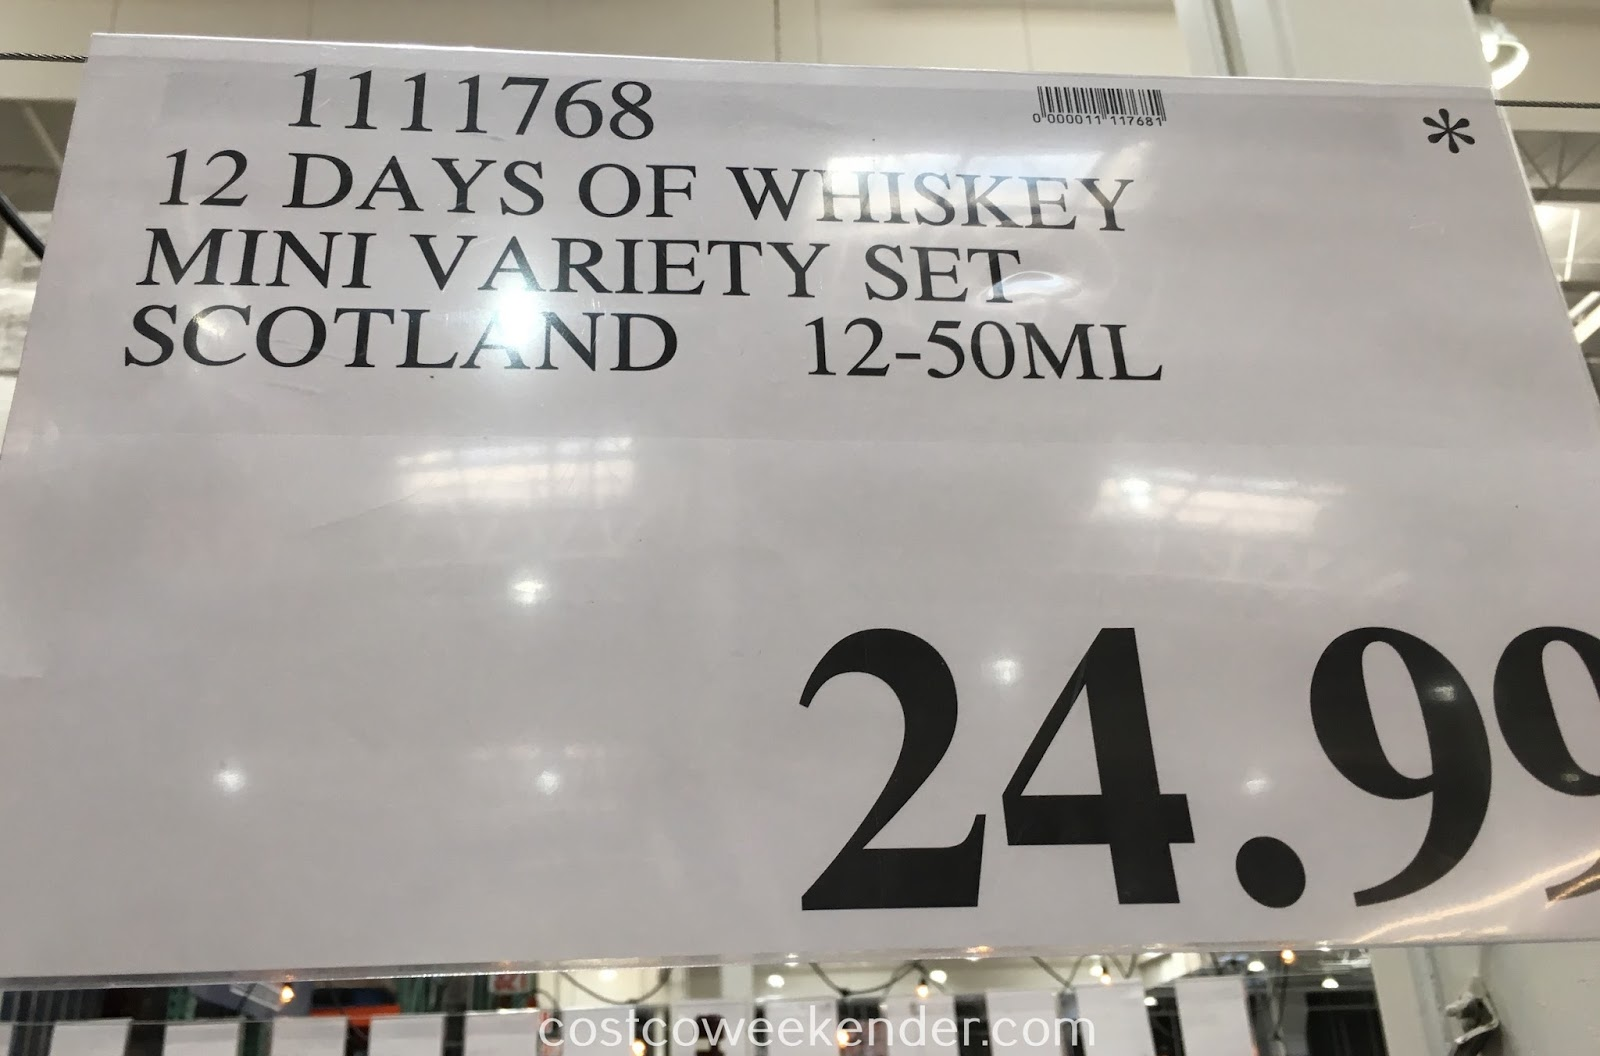 Deal for the 12 Days of Whiskey Mini Variety Set at Costco